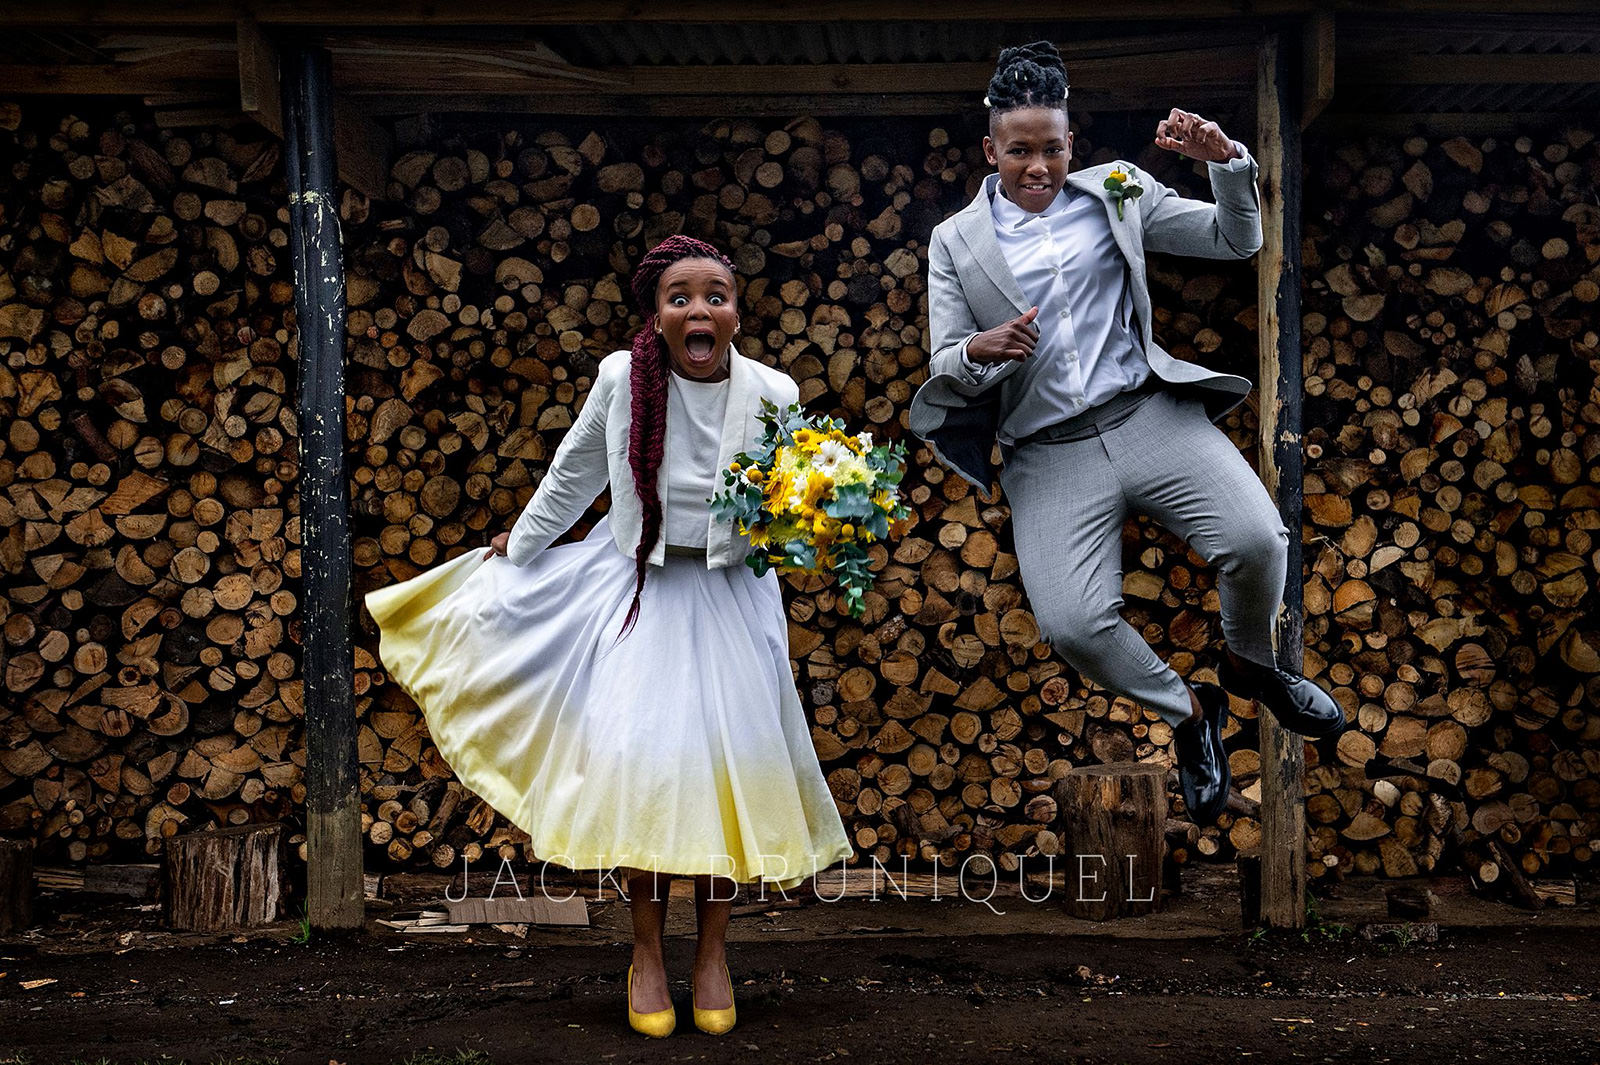 Creative couple portrait of brides at Brahman Hills, photographed by top South African wedding and documentary photographer, Jacki Bruniquel.